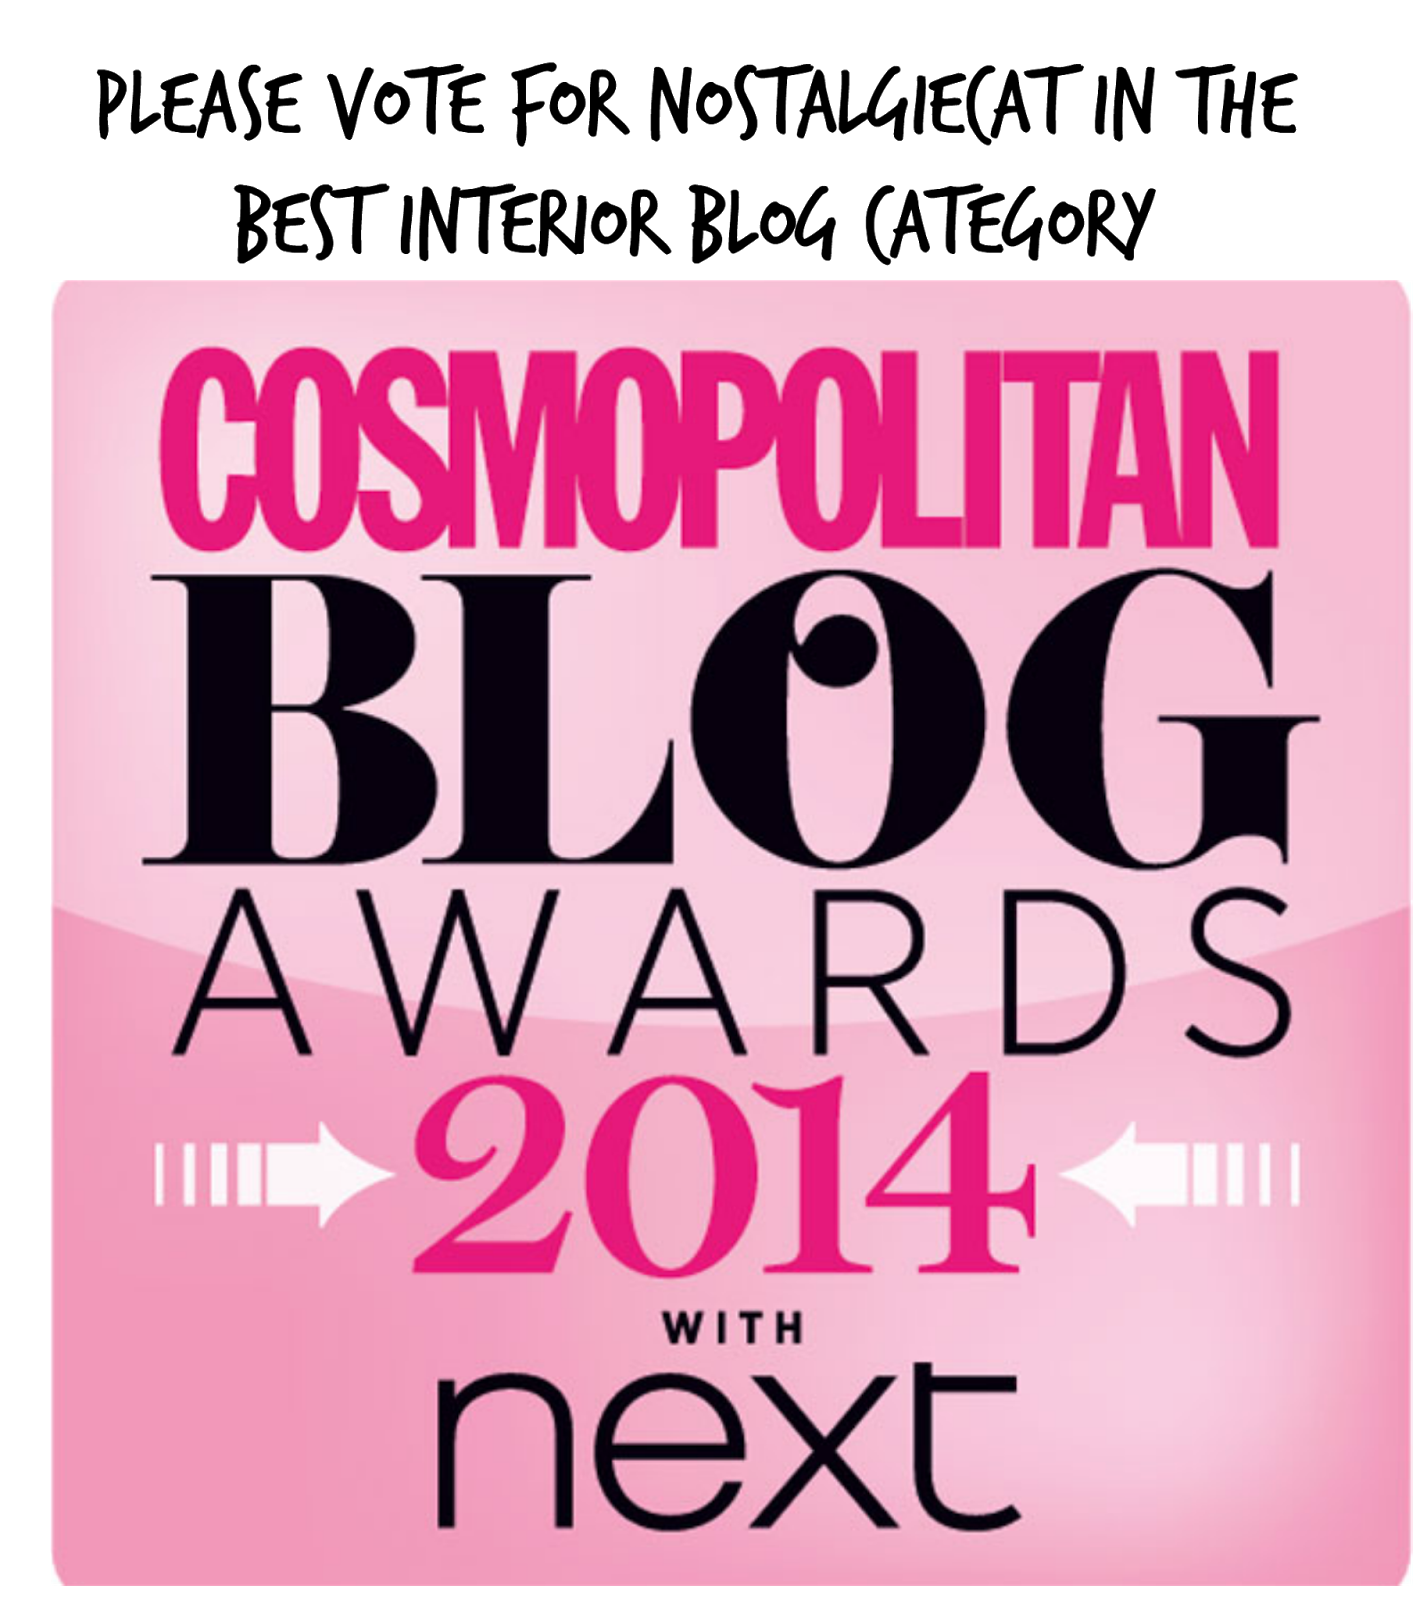 http://www.cosmopolitan.co.uk/blogs/cosmo-blog-awards-2014/cosmo-blog-awards-2014-shortlist